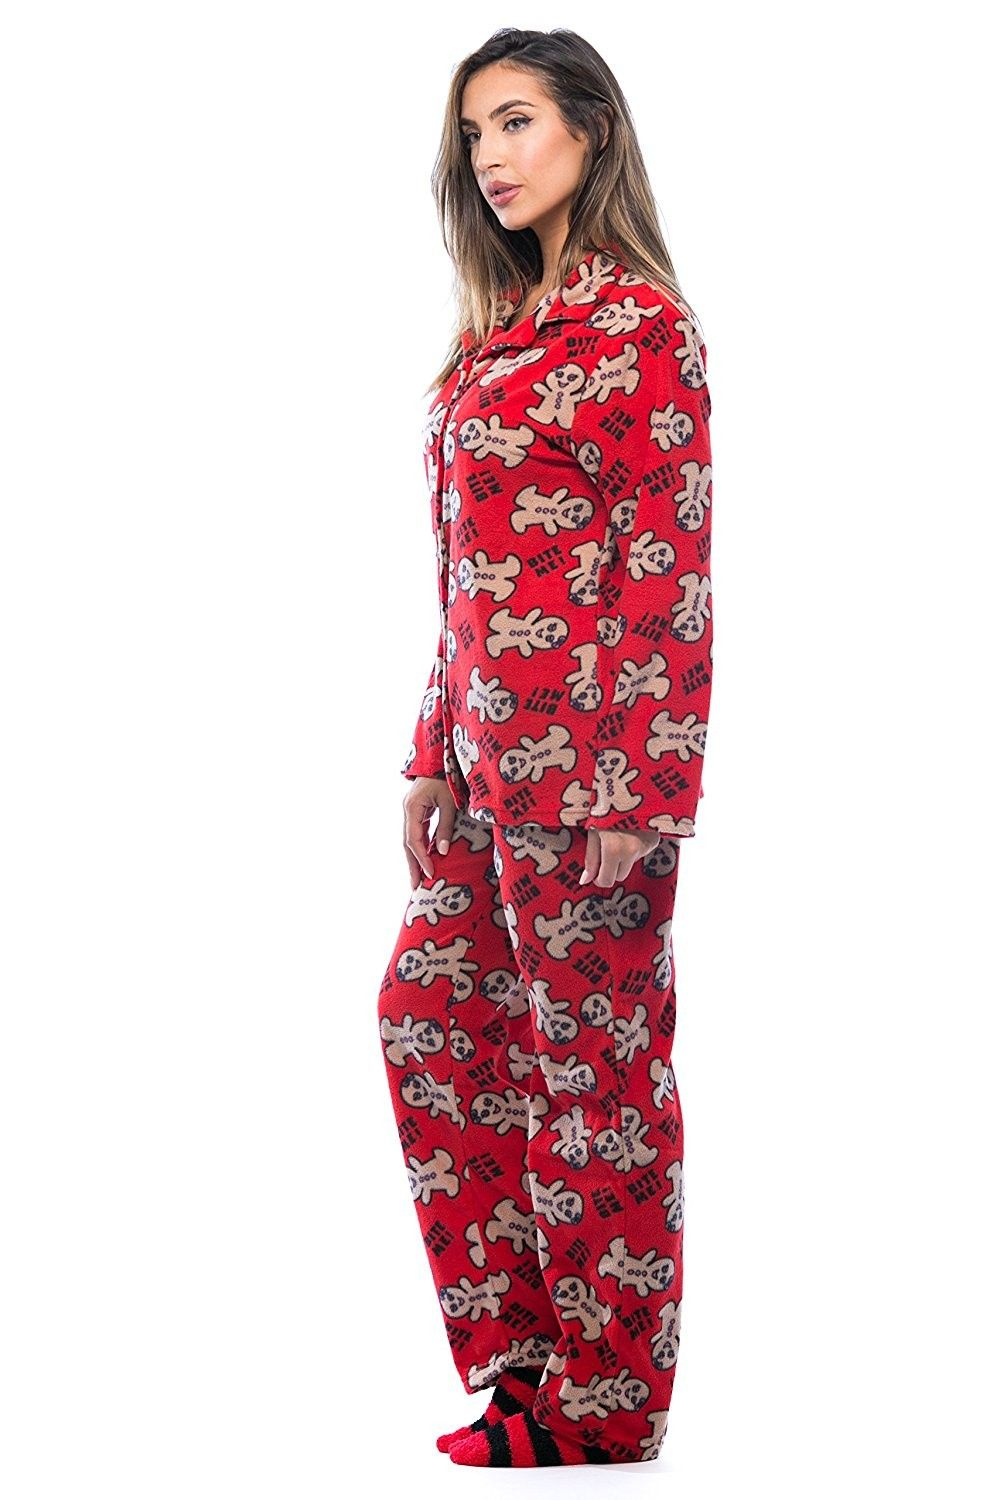 00805a8ae6 Printed Microfleece Button Front PJ Pant Set With Socks - Red - Bite ...